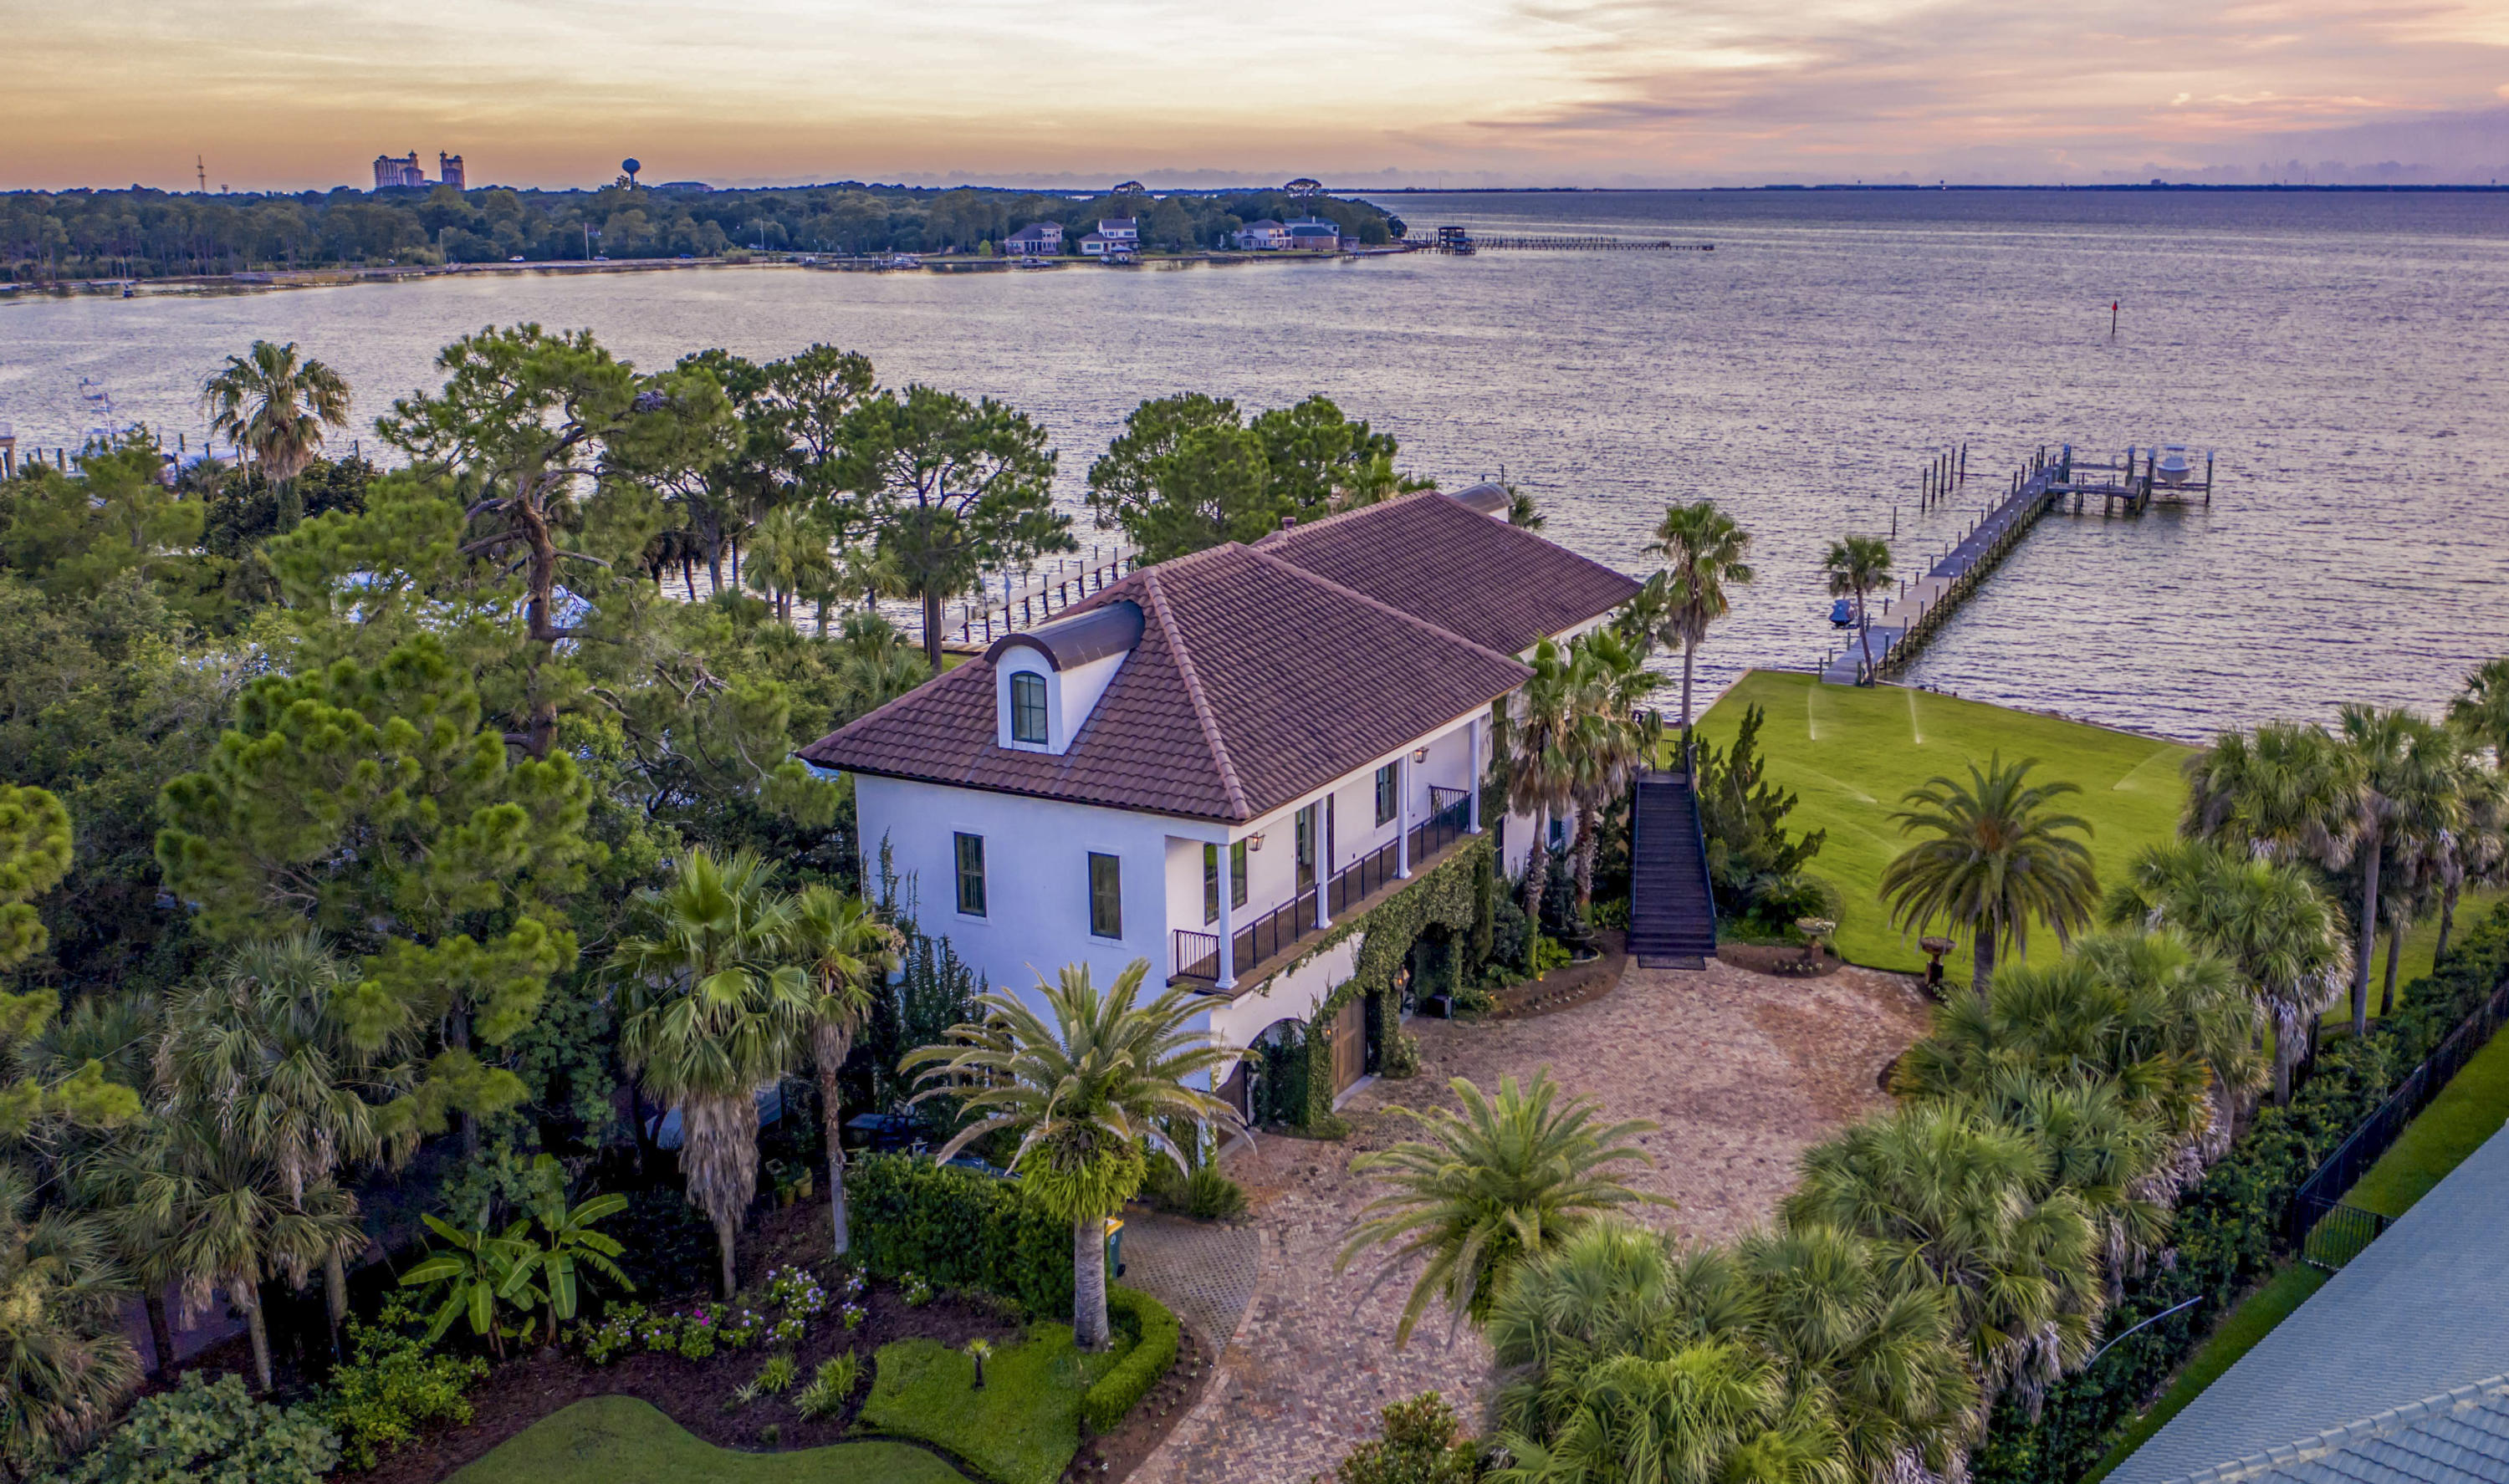 One of the finest lots in Destin, Florida, located in the exclusive Cobb's Point! Measuring nearly one acre, with approximately 180' of water frontage at the coveted point of Joe's Bayou and Choctawhatchee Bay, the property features the most desired west-facing orientation, providing stunning sunset views, afternoon light, and a phenomenal dock that will accommodate large boats! Evoking the classic beauty of old-world France, the home is built with generations in mind. It features many imported finishes, as well as superior ICF construction and modern technologies designed for longevity in the north Florida climate. The flexibility of the 3-story floorplan promotes the interests of generations as well: the main living space and master suite are on the second floor, with 2 additional... bedroom suites plus a connecting living area on the third level, and a first floor apartment with another gorgeous master suite, which can either be self-sufficient, or easily reached via connecting stairs or the elevator.          Gorgeous Bois Chamois French white oak floors, shipped from France, comprise the wide-plank floors on the first two floors. In addition to stunning water views, the open entertaining area includes a tea bead chandelier from India setting off the dining area and a coral stone fireplace with surround sound incorporated. Truly one of a kind, the kitchen features Bevolo gas lanterns, old Chicago brick accent wall, a LaCornue range from France with full concrete hood, French Herbeau faucets, custom-painted cabinets, poured concrete countertops, and an amazing island custom built over an antique church altar. Custom woodworking was employed in the adjoining pantry. Nearby are an office, with dual computer desks and hand-carved, antique doors, and a powder room for guests boasting a giant clam shell sink and antique Belgian mirror.                       It may look elegant on the outside, but this is a full-fledged dream garage! Over 1300' of conditioned space and